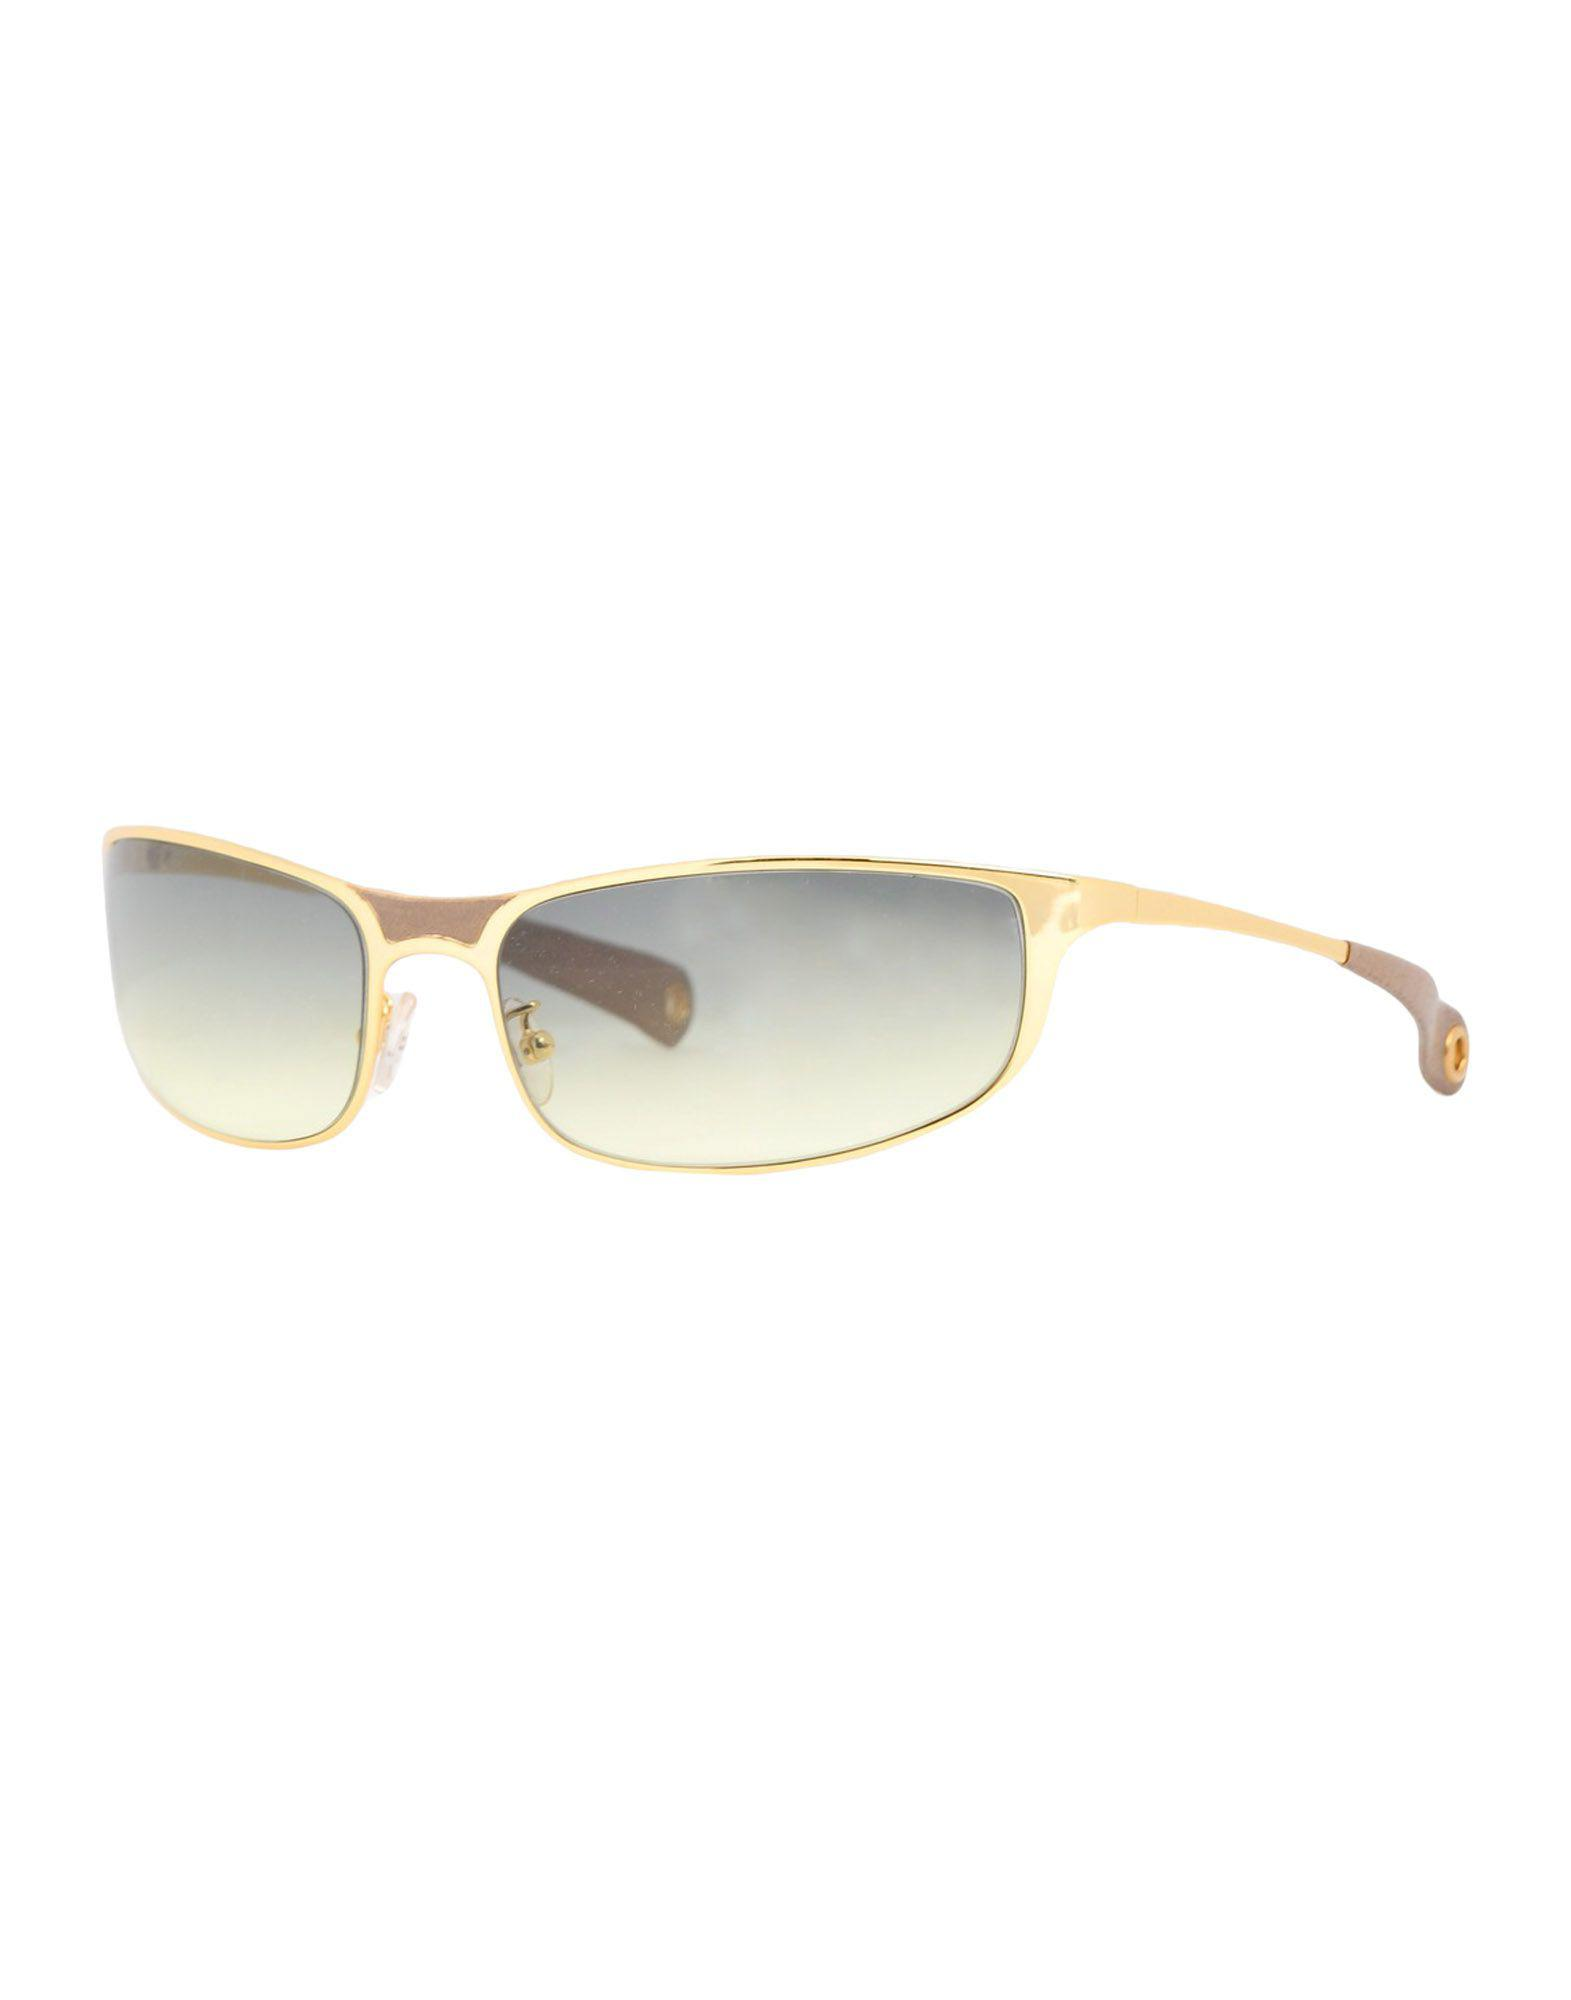 568c65ffb09 Marni Sunglasses in Metallic - Lyst